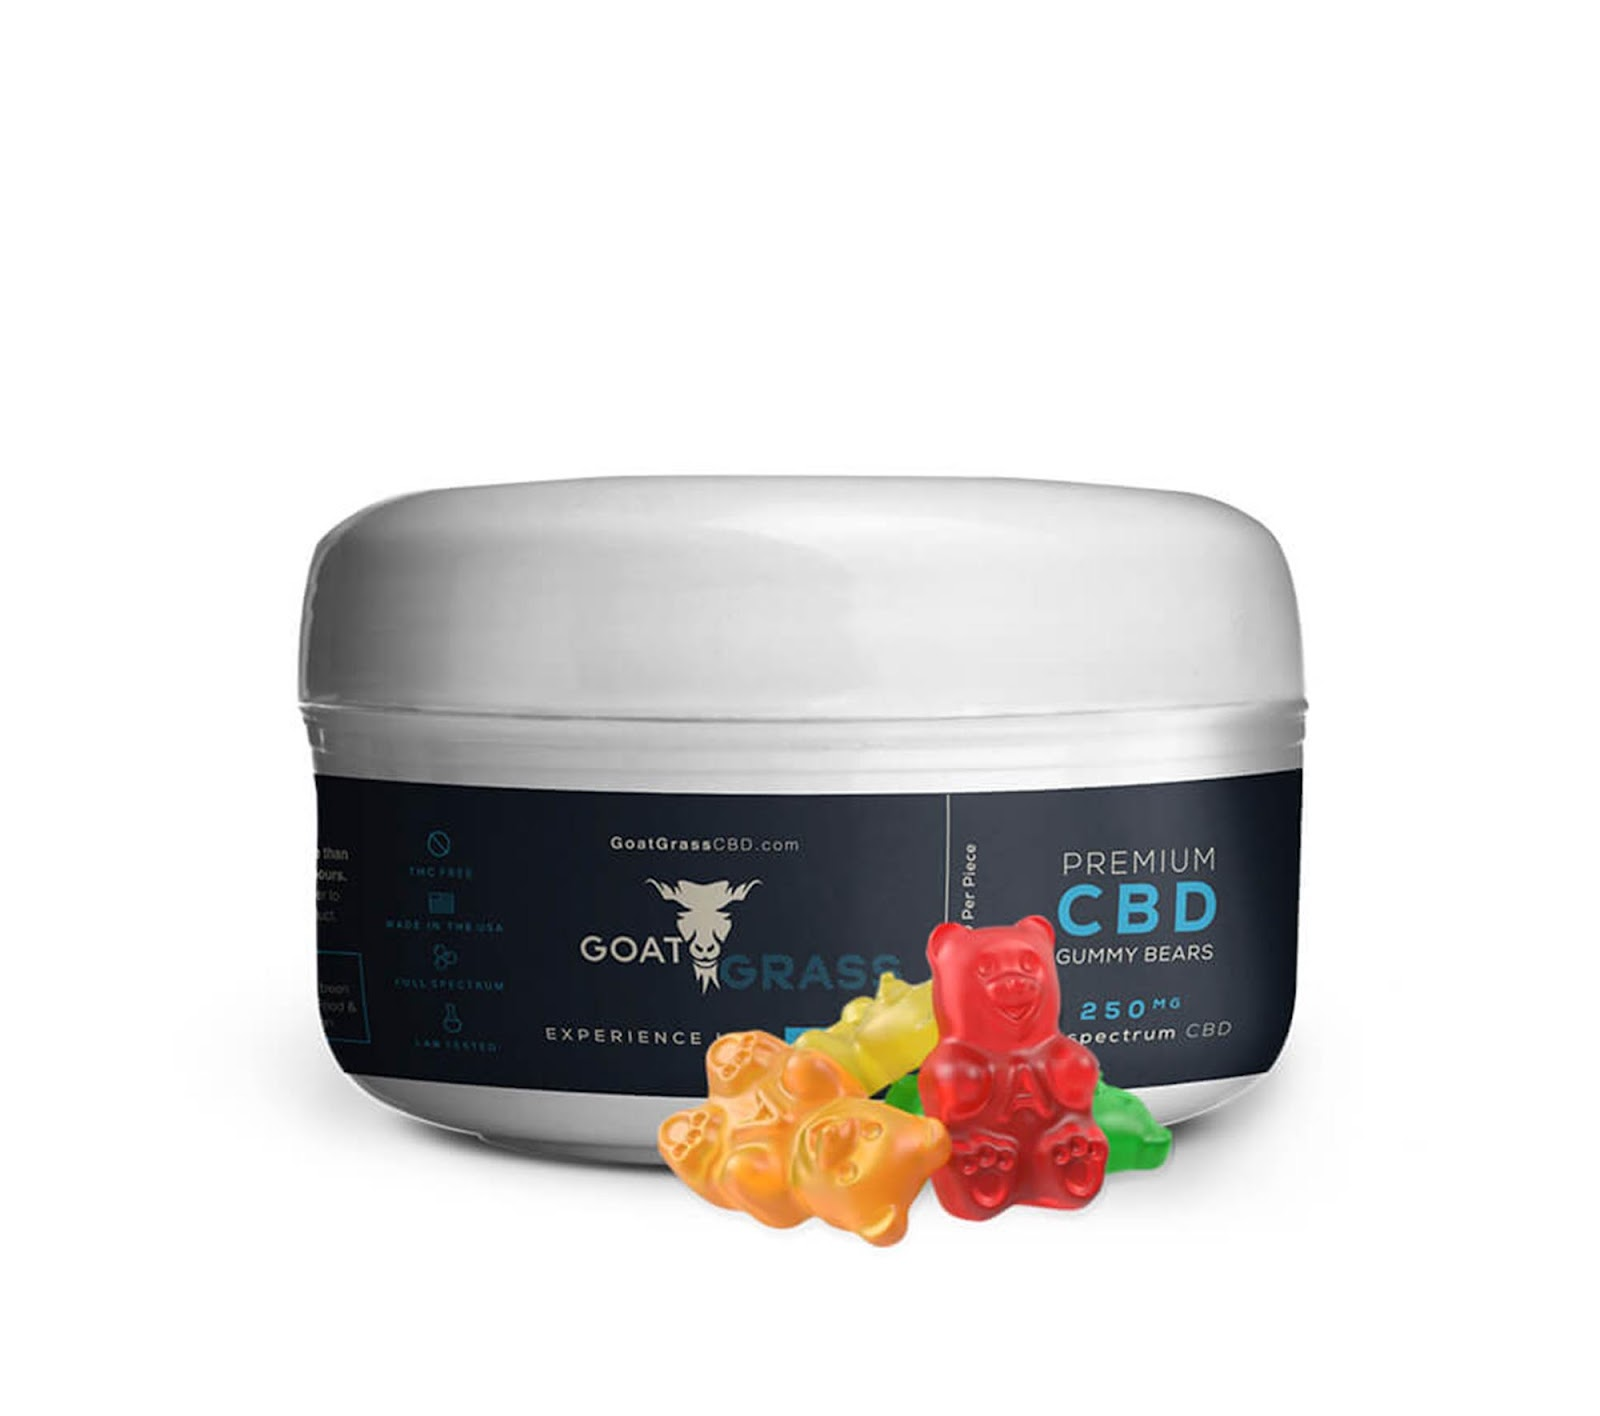 CBD Gummies, CBD Gummy Bears, Gummies, Gummy Bears, Premium CBD, Goat Grass CBD